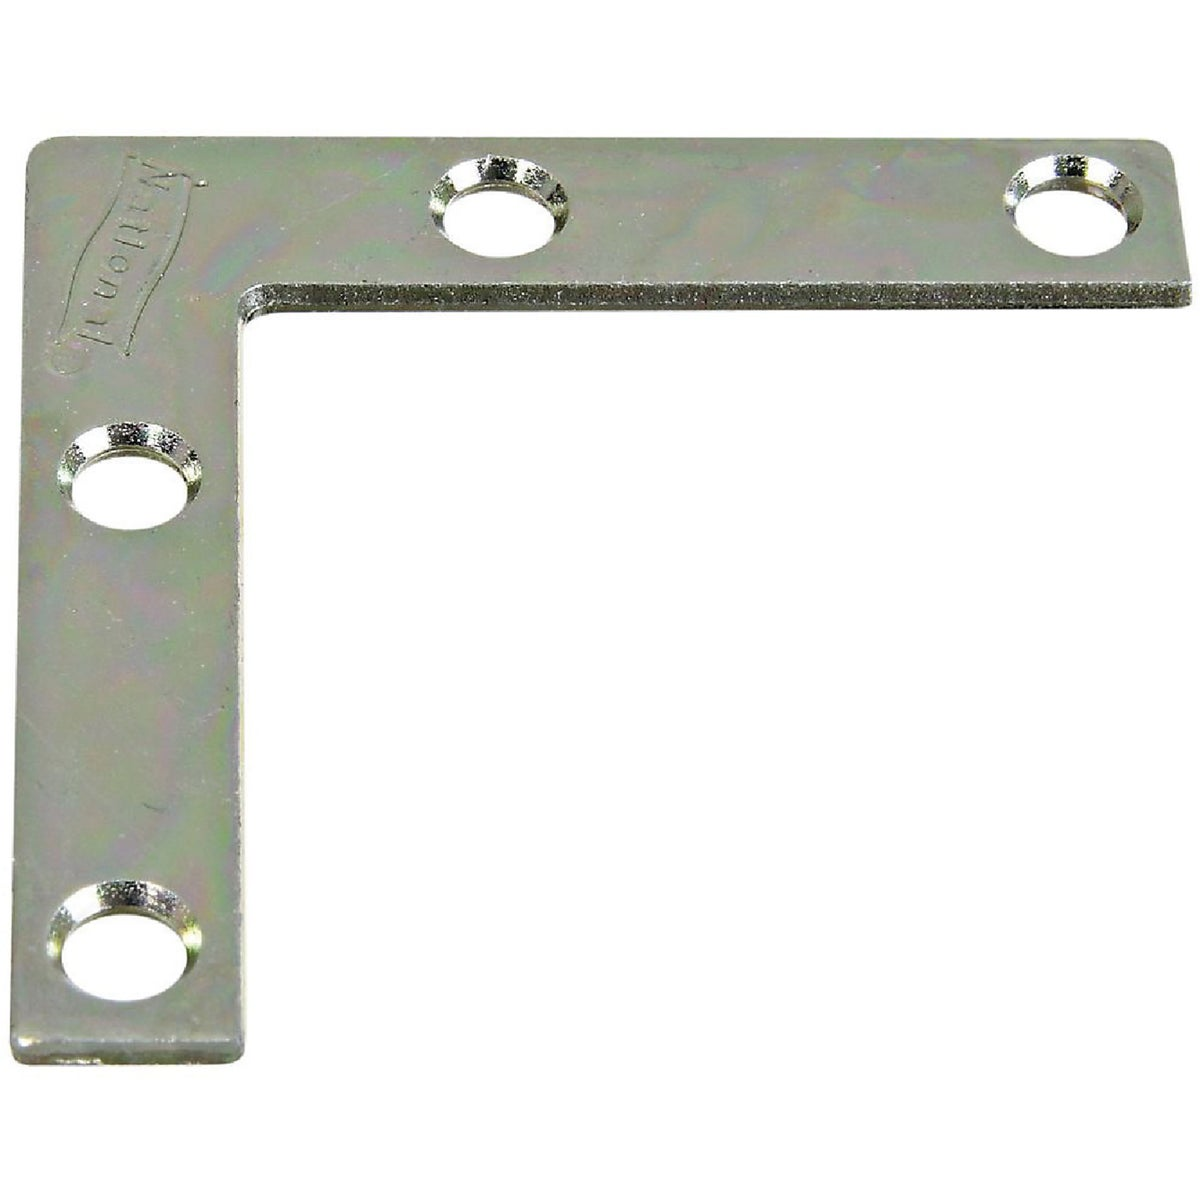 2X3/8 ZINC FLAT IRON - N266486 by National Mfg Co